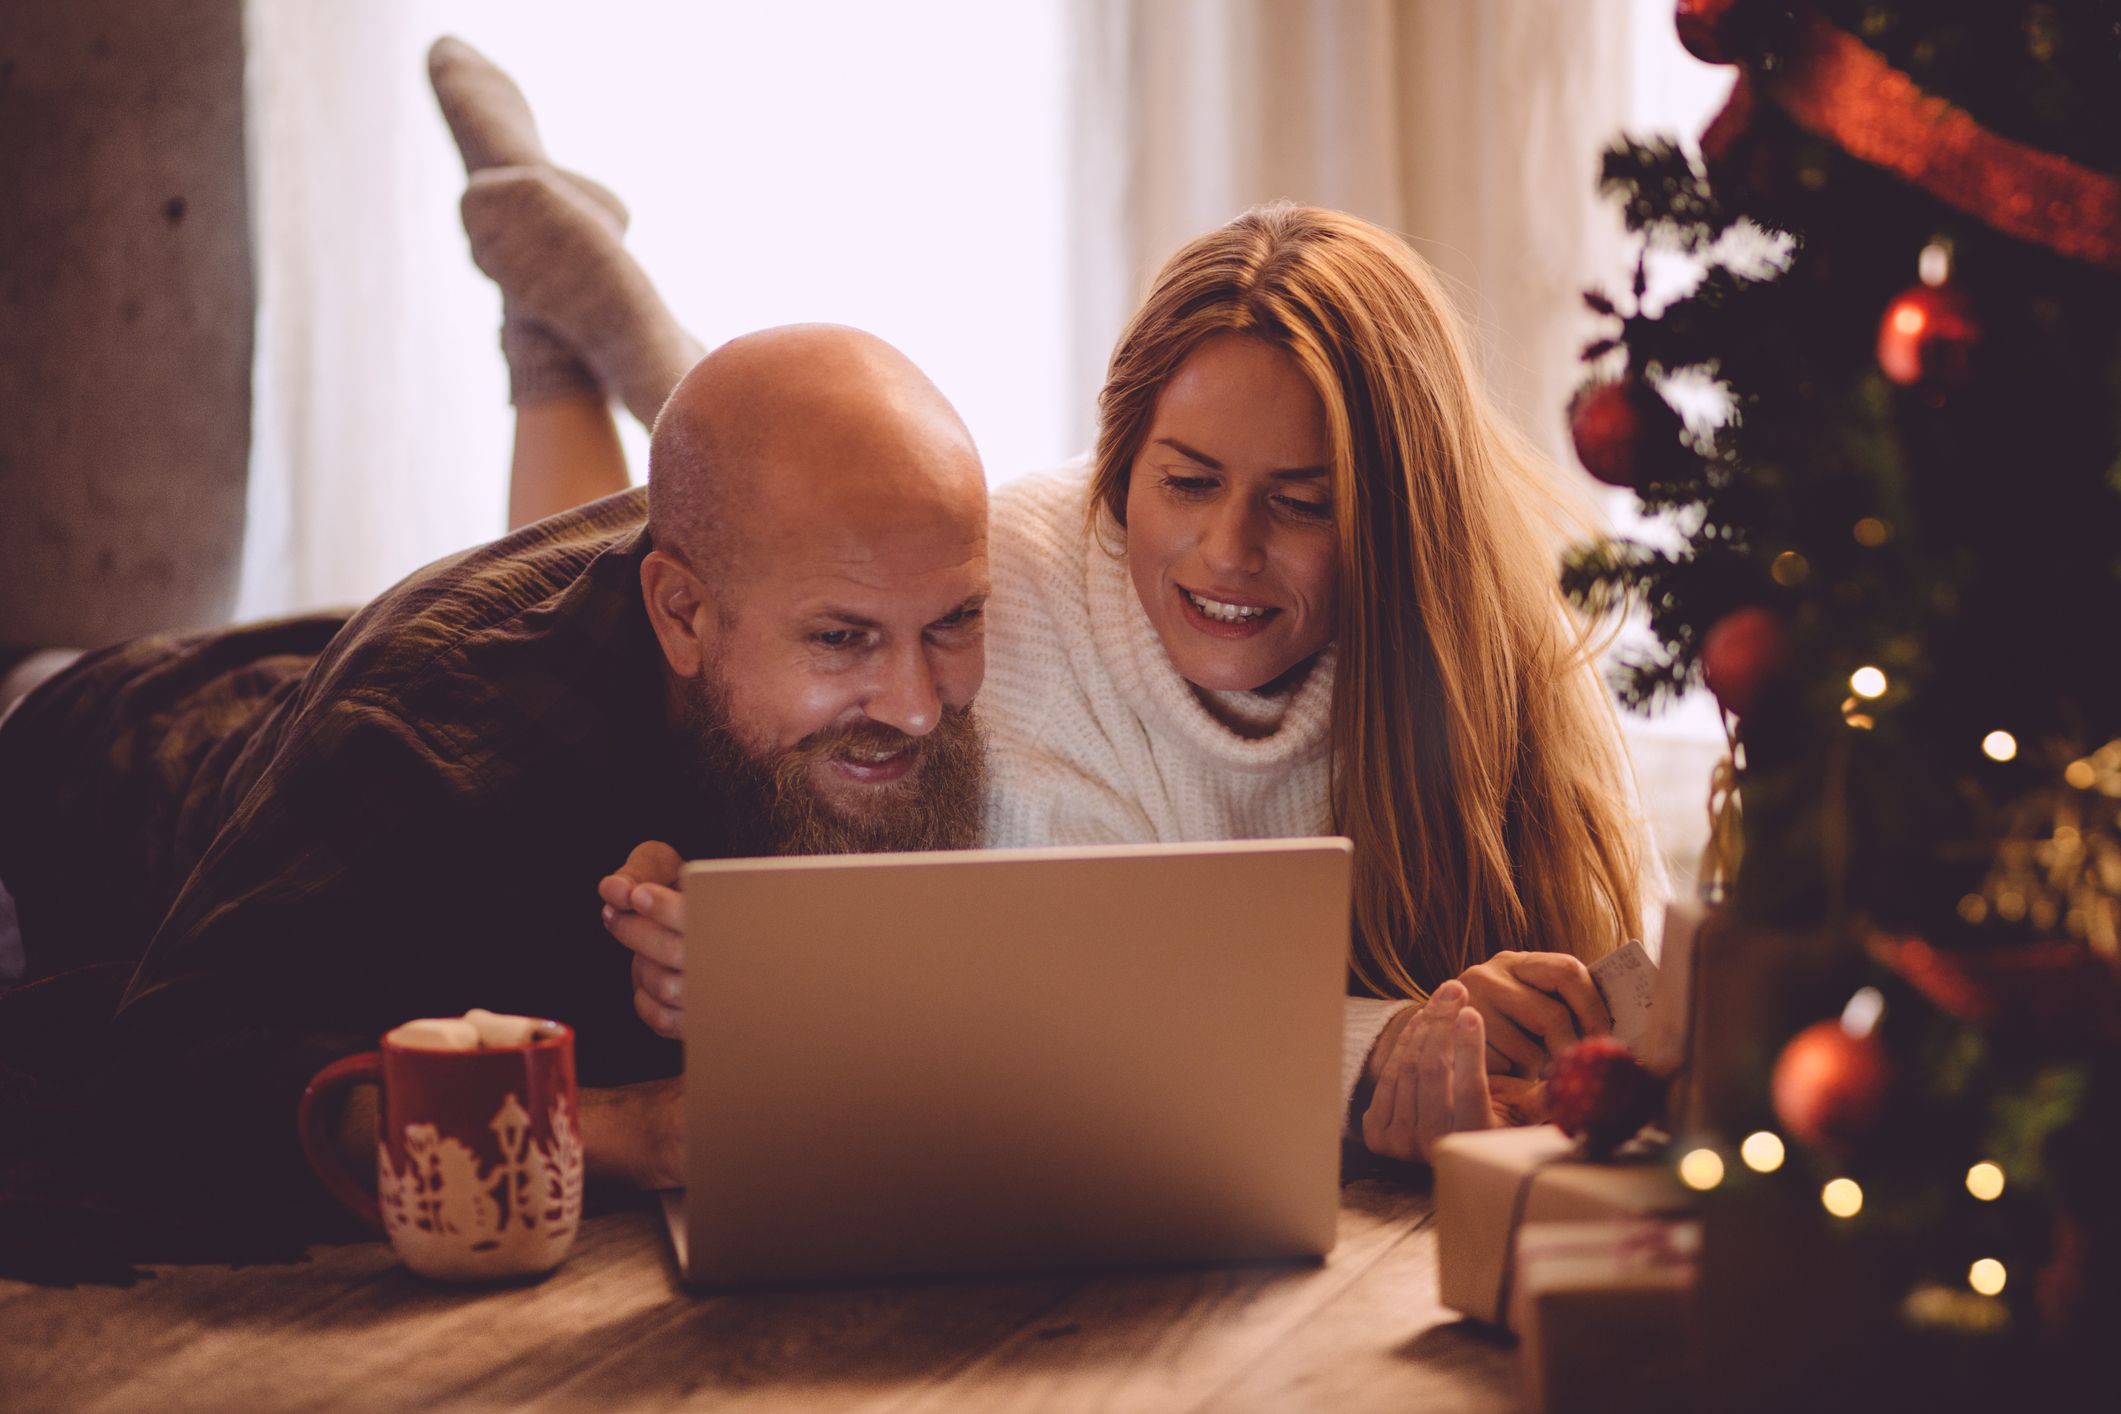 A woman and a man look at a laptop under a Christmas tree with christmas festive decorations